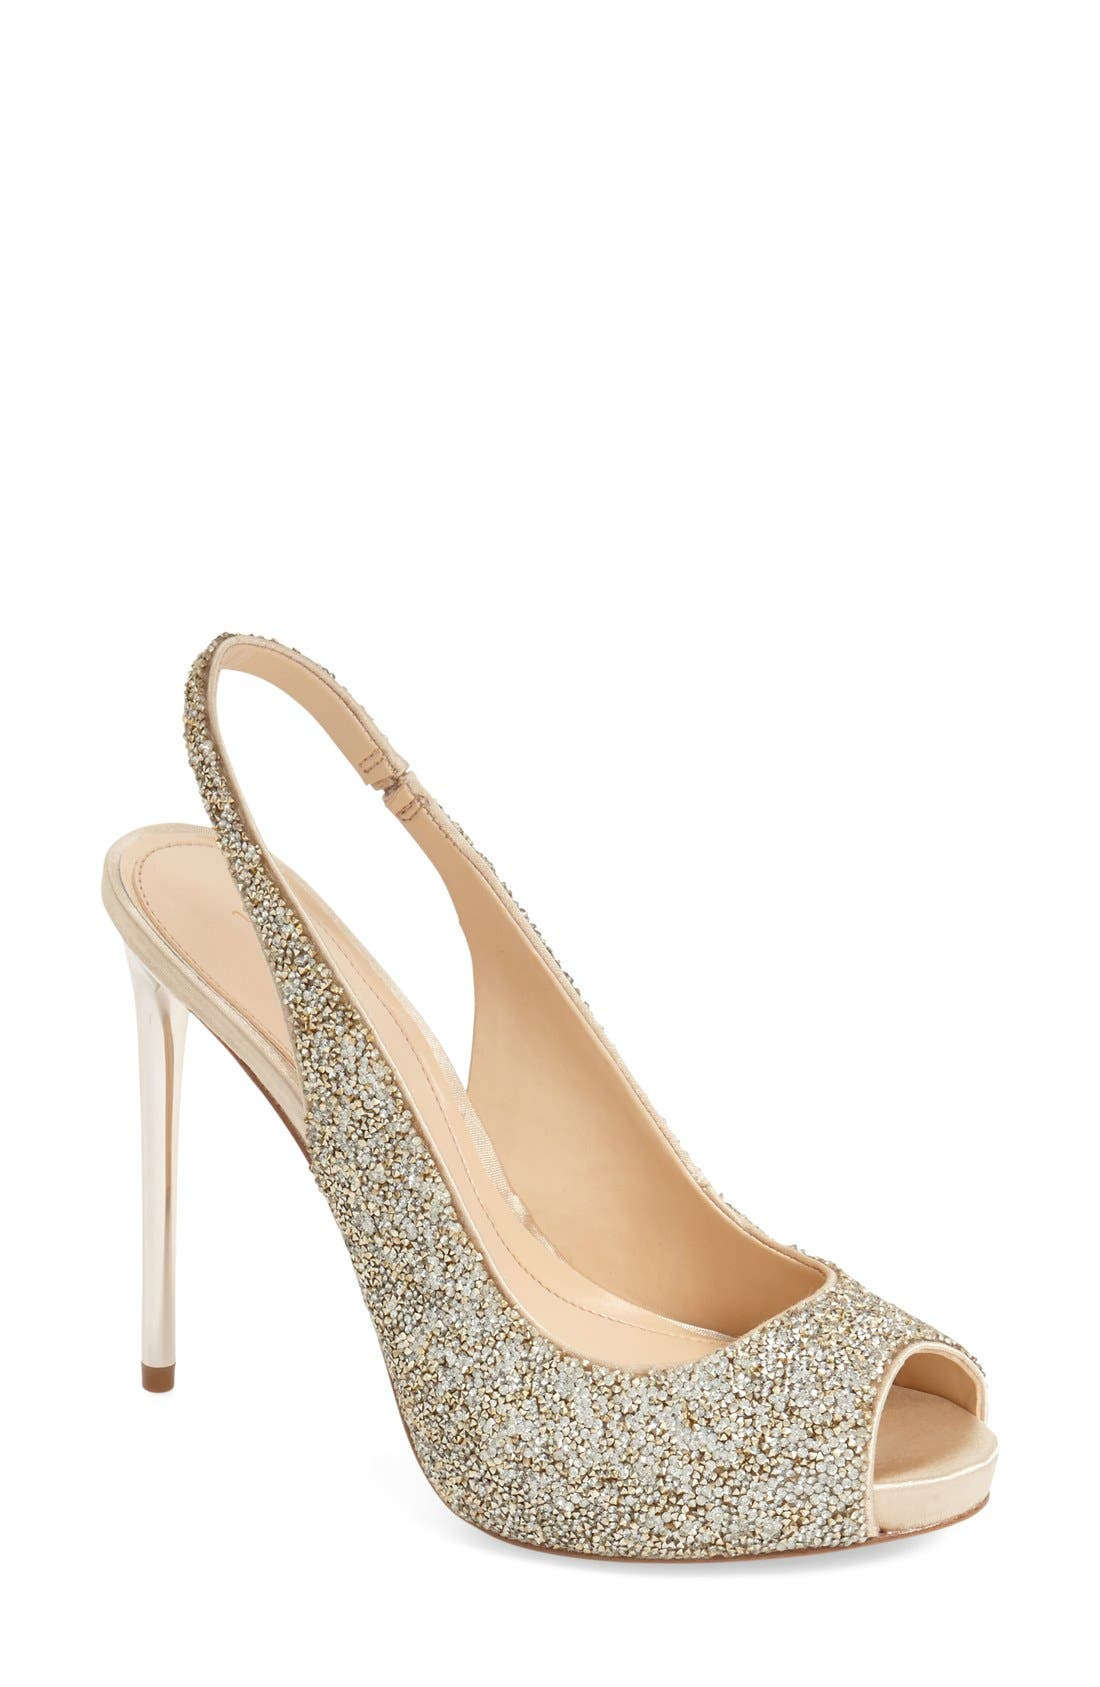 Alternate Image 1 Selected - Imagine Vince Camuto 'Pavi' Slingback Peep Toe Pump (Women)